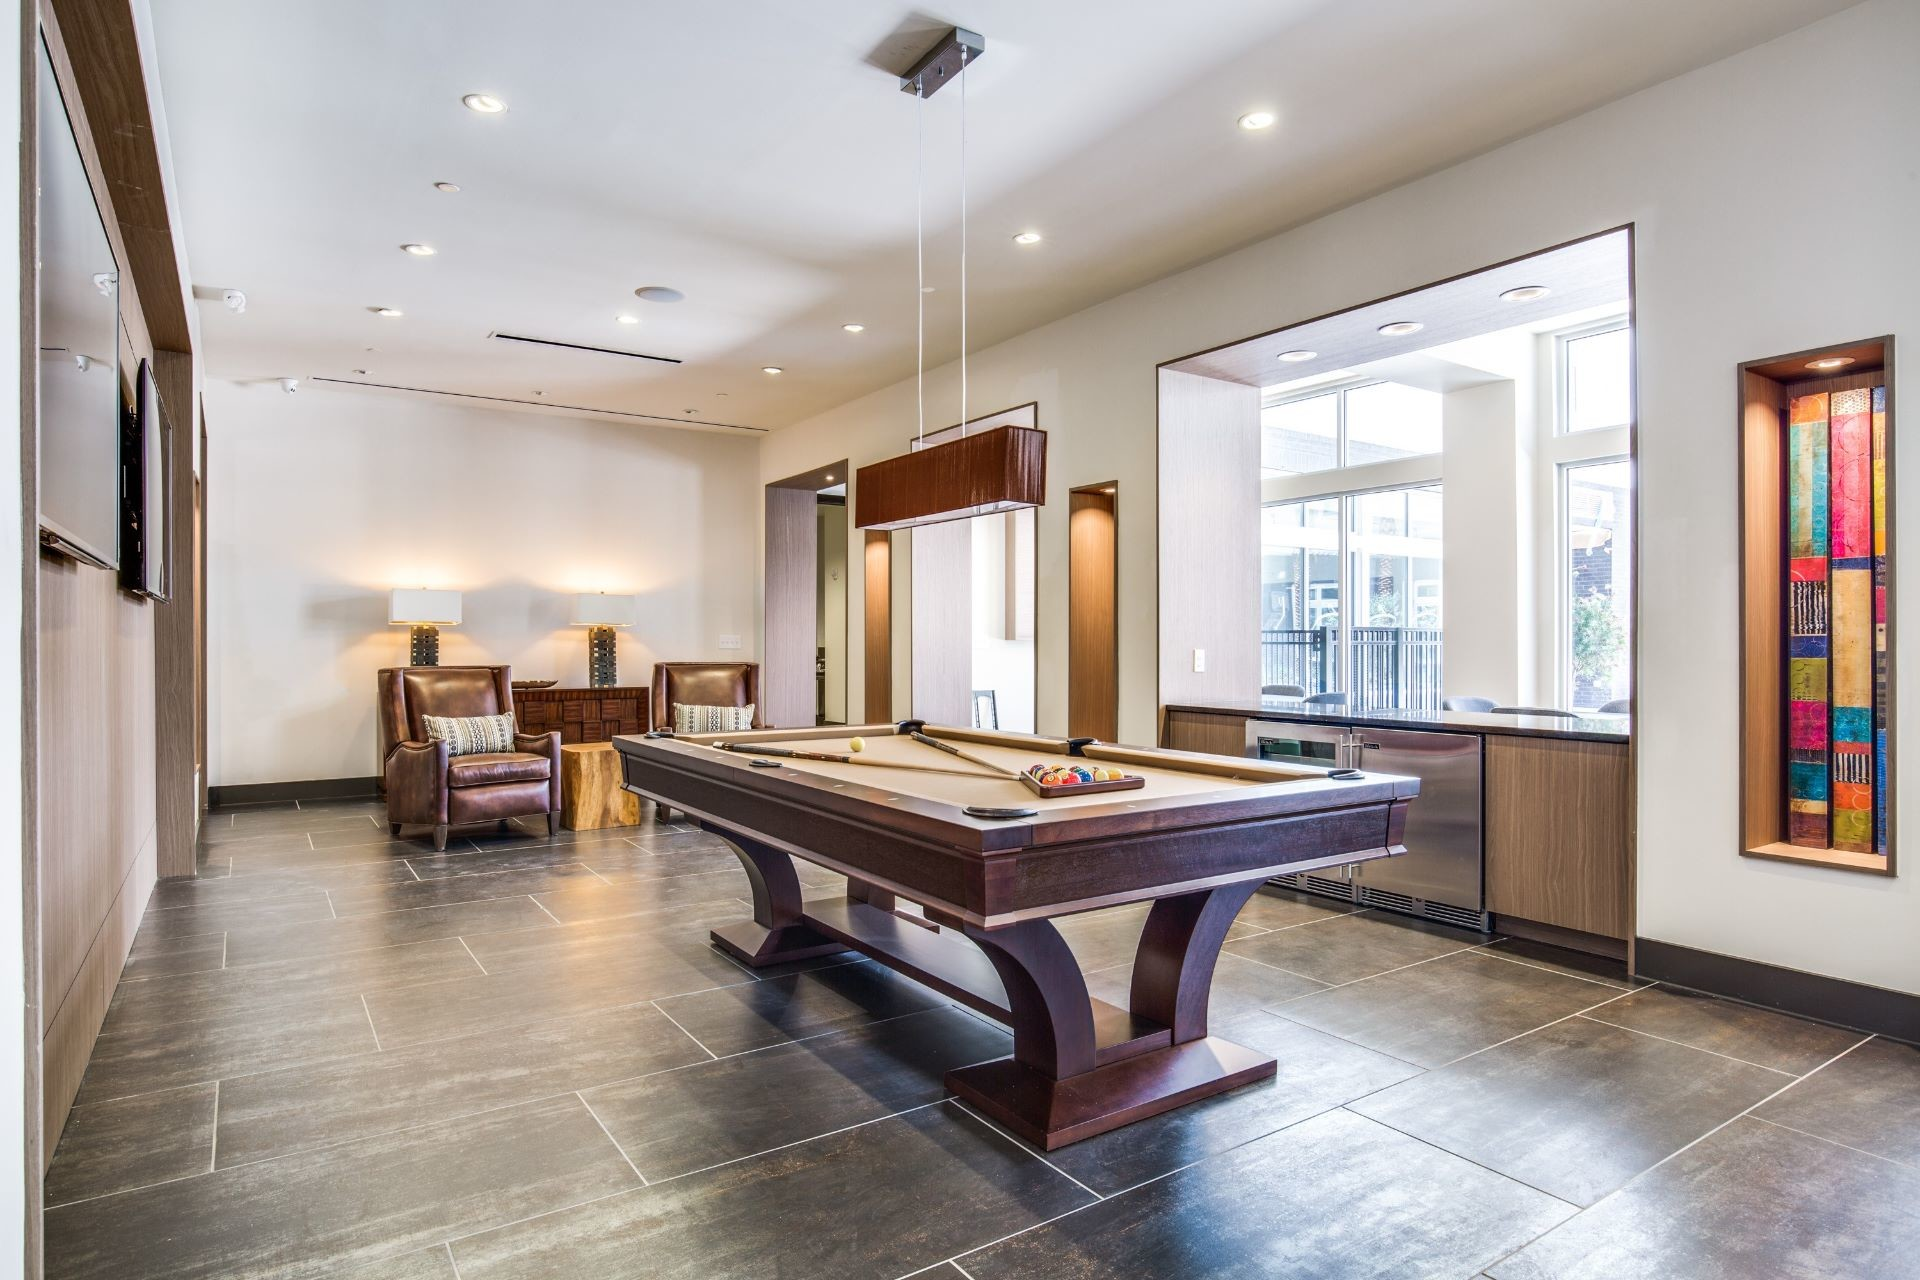 Folio West Luxury Furnished Apartments In The Houston